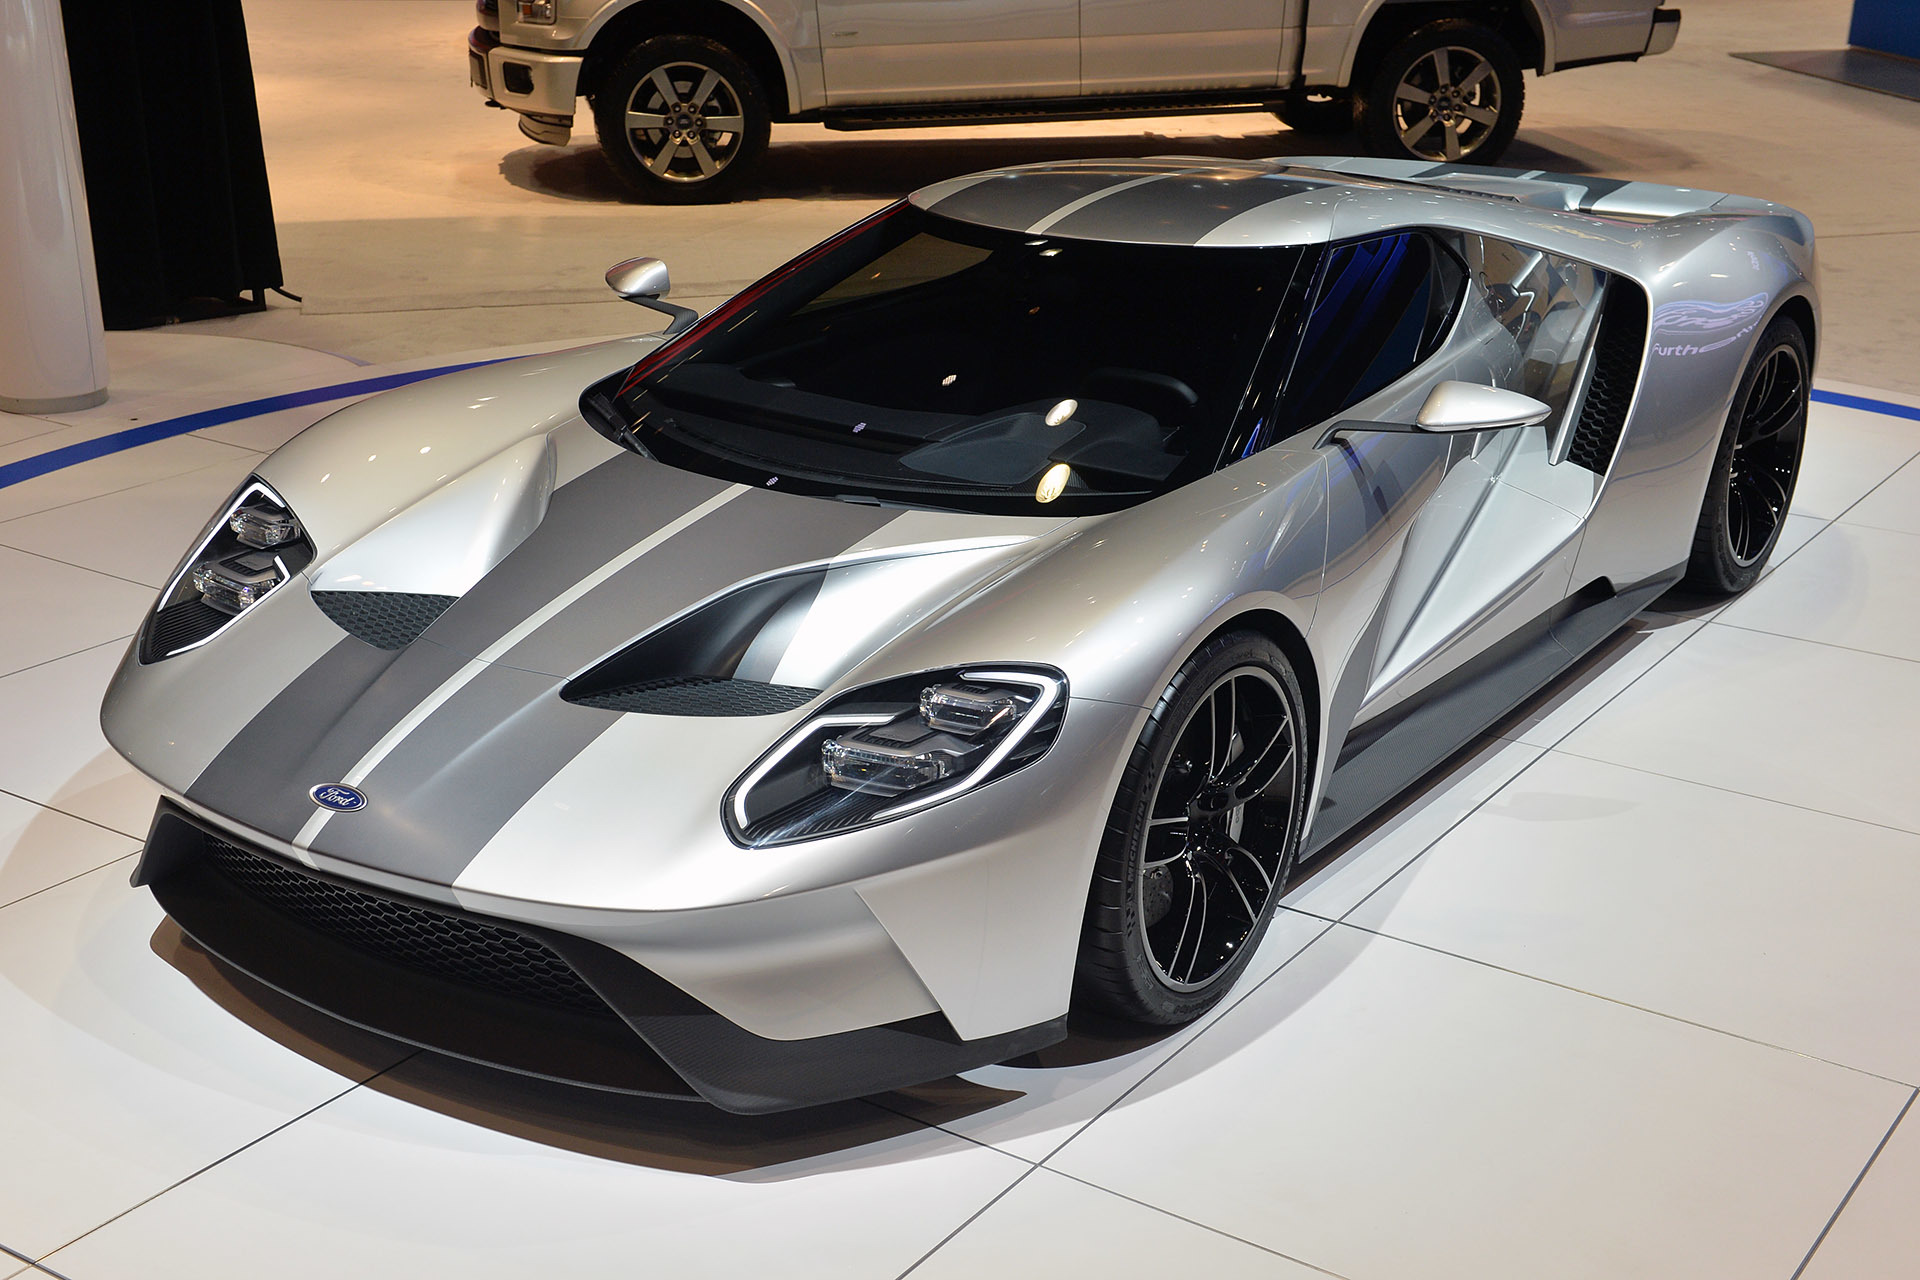 2017 Ford GT Photo: wallpapersdsc